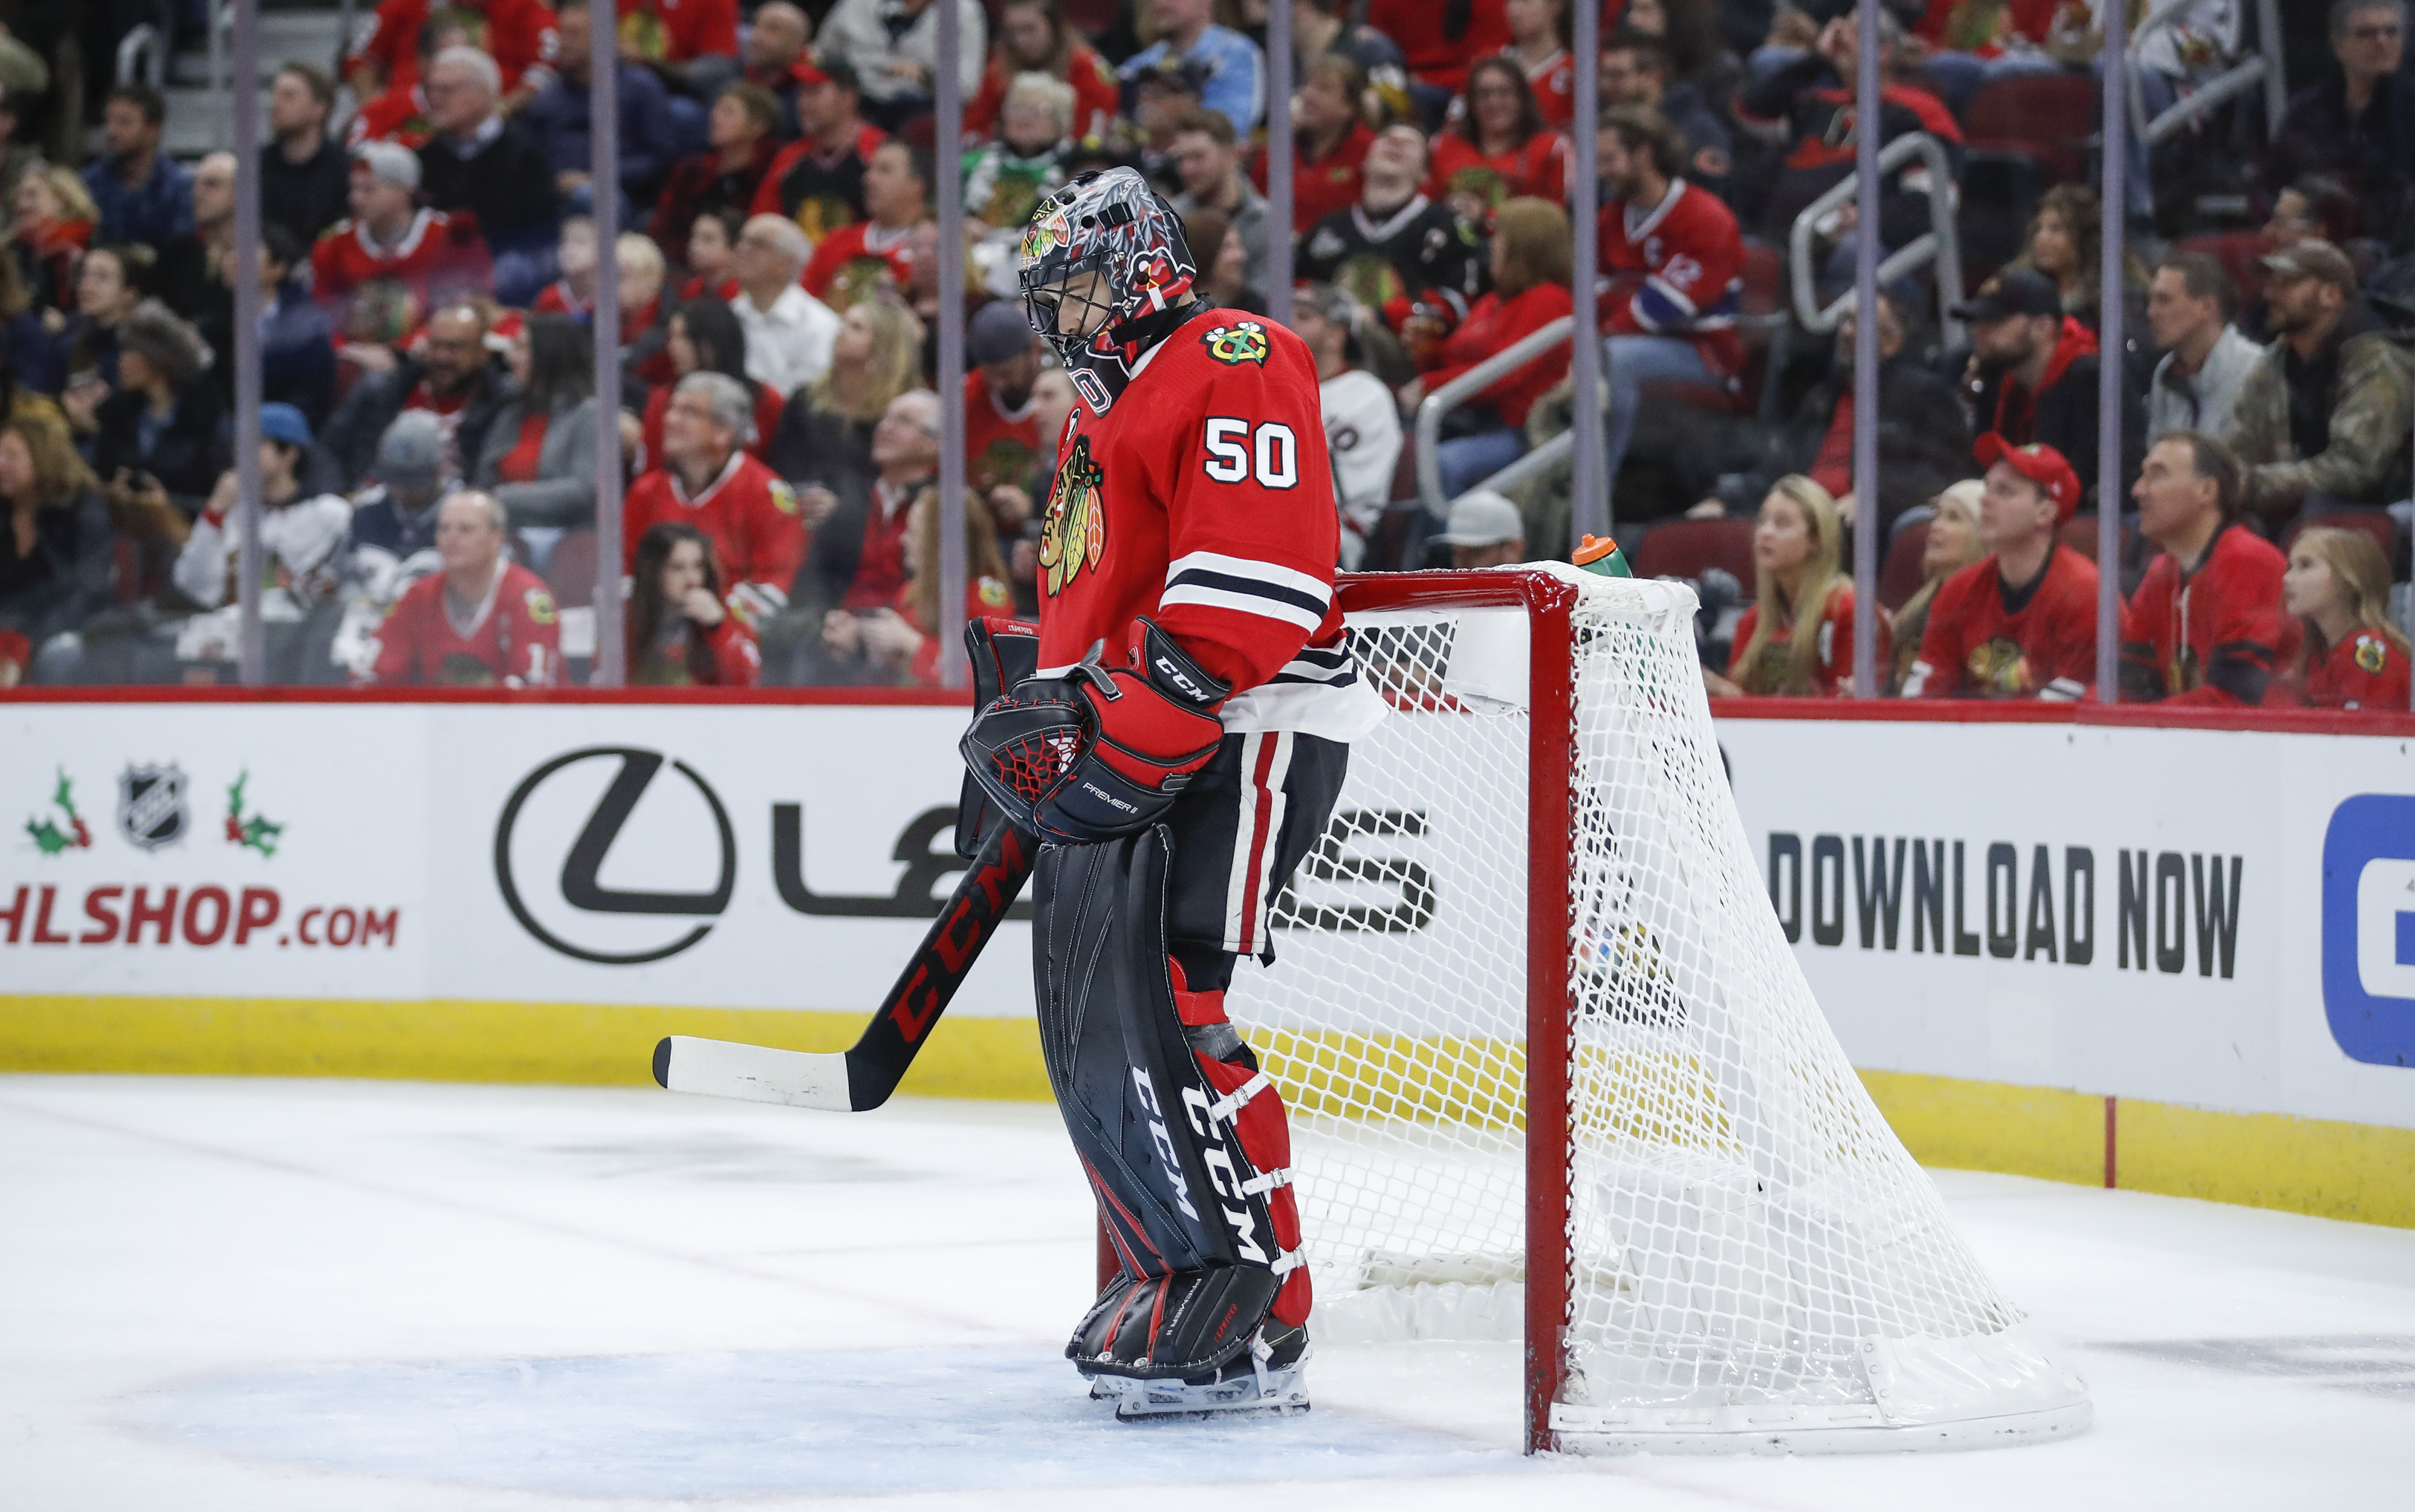 Corey Crawford finds himself with the Devils after an eventful 2020.